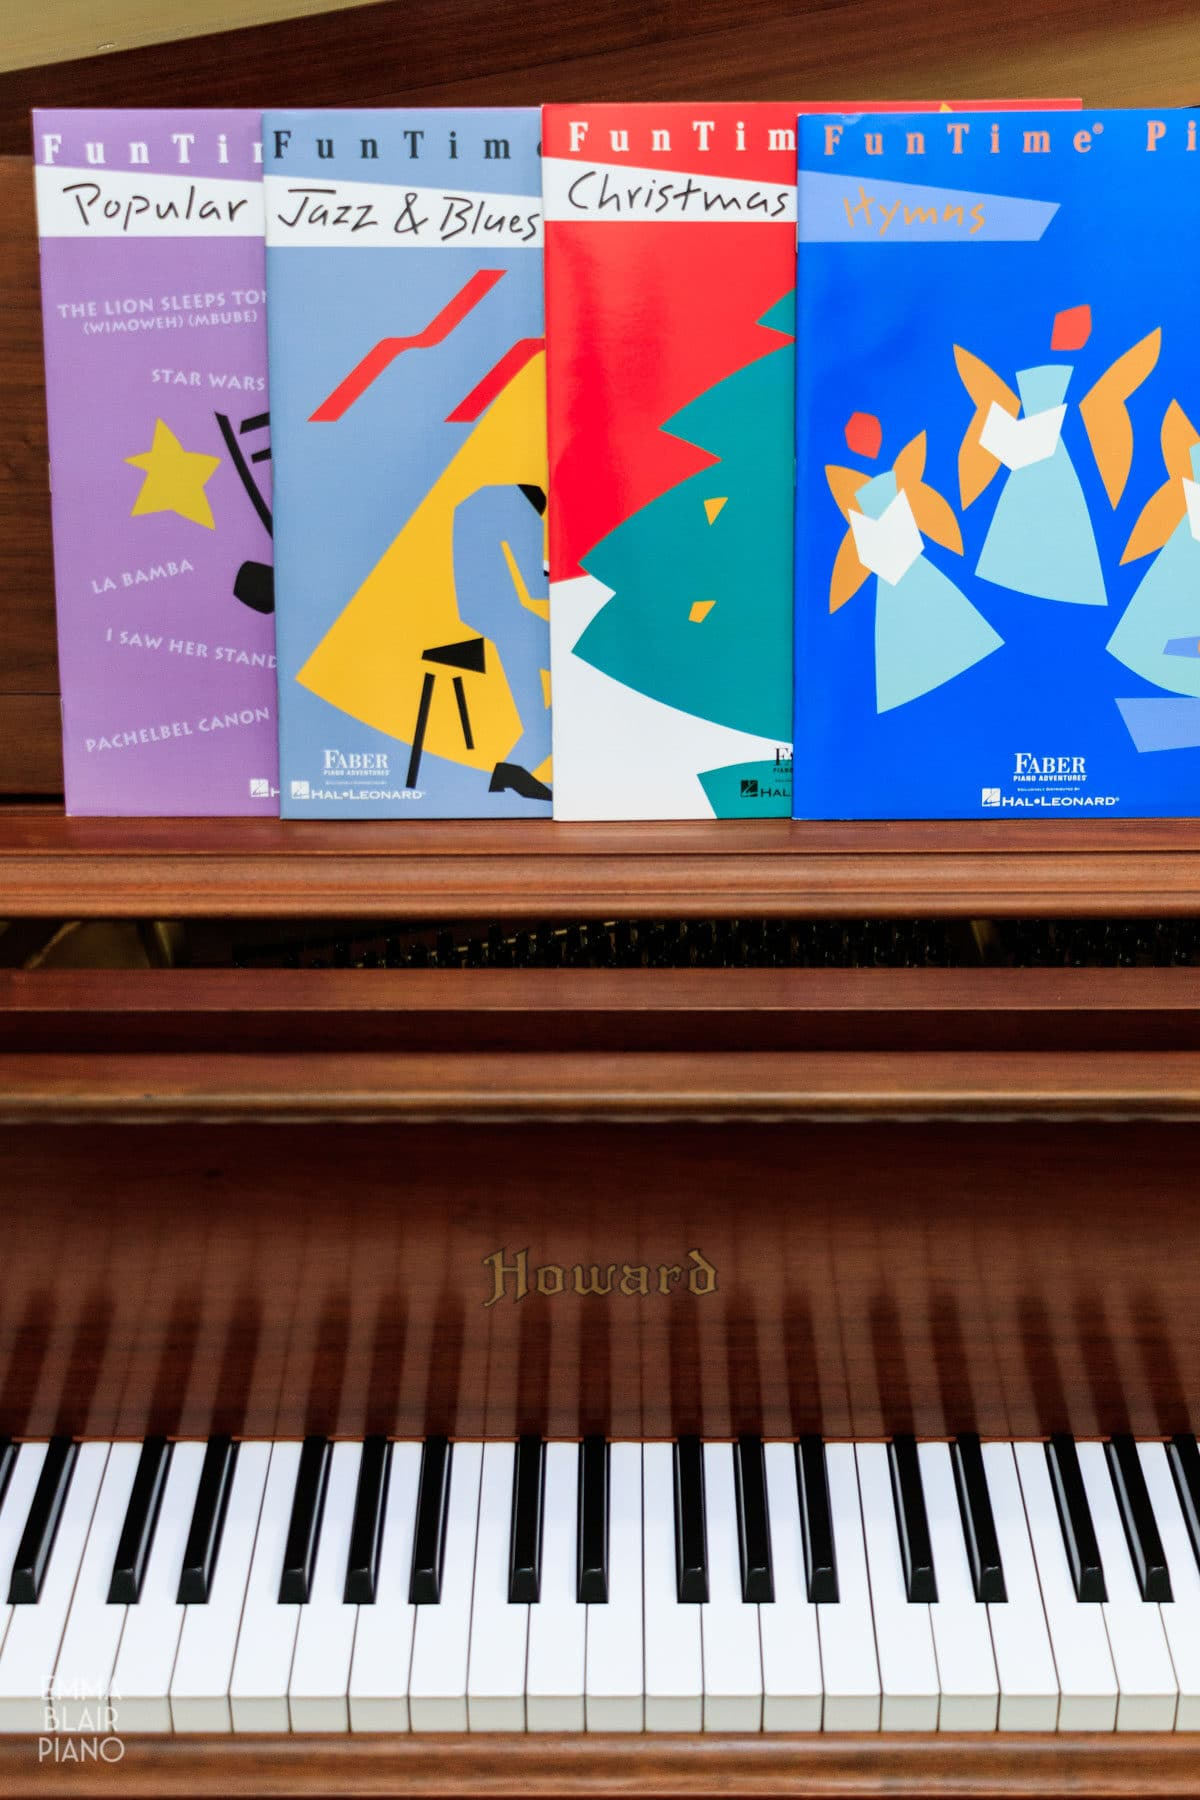 Faber & Faber supplementary books on a piano music stand